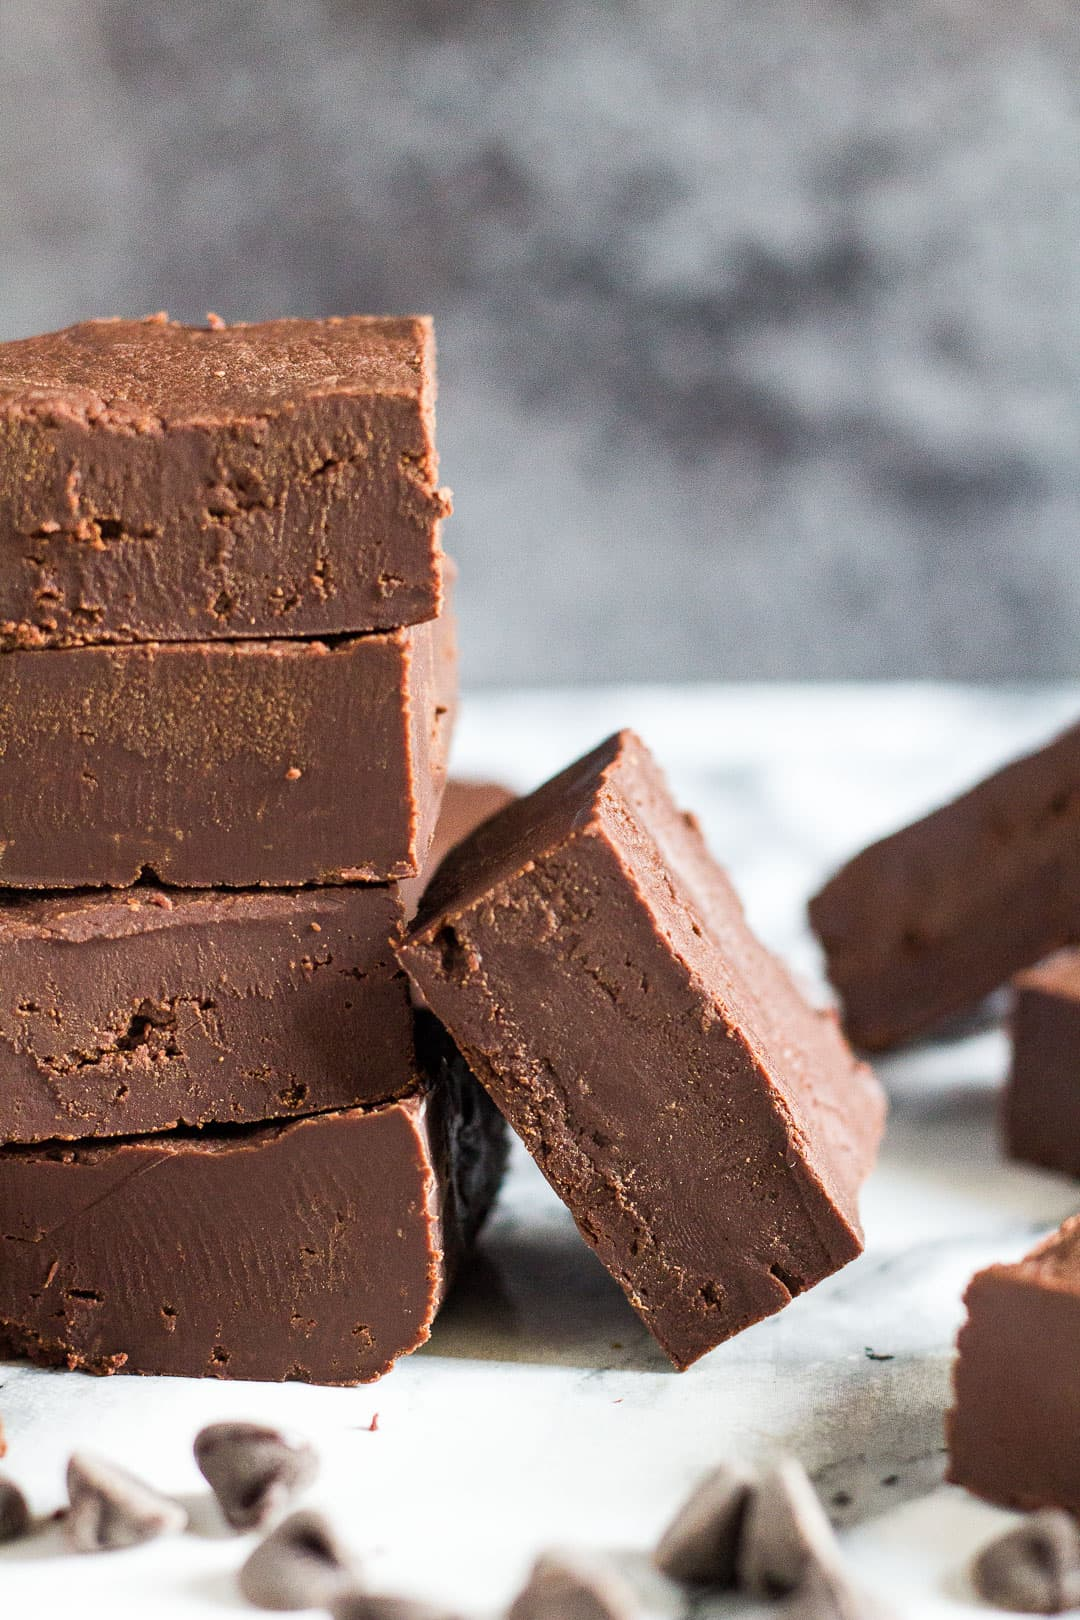 Easy Chocolate Fudge - Incredibly easy and deliciously creamy chocolate fudge that only requires 4 ingredients to make! Recipe on marshasbakingaddiction.com